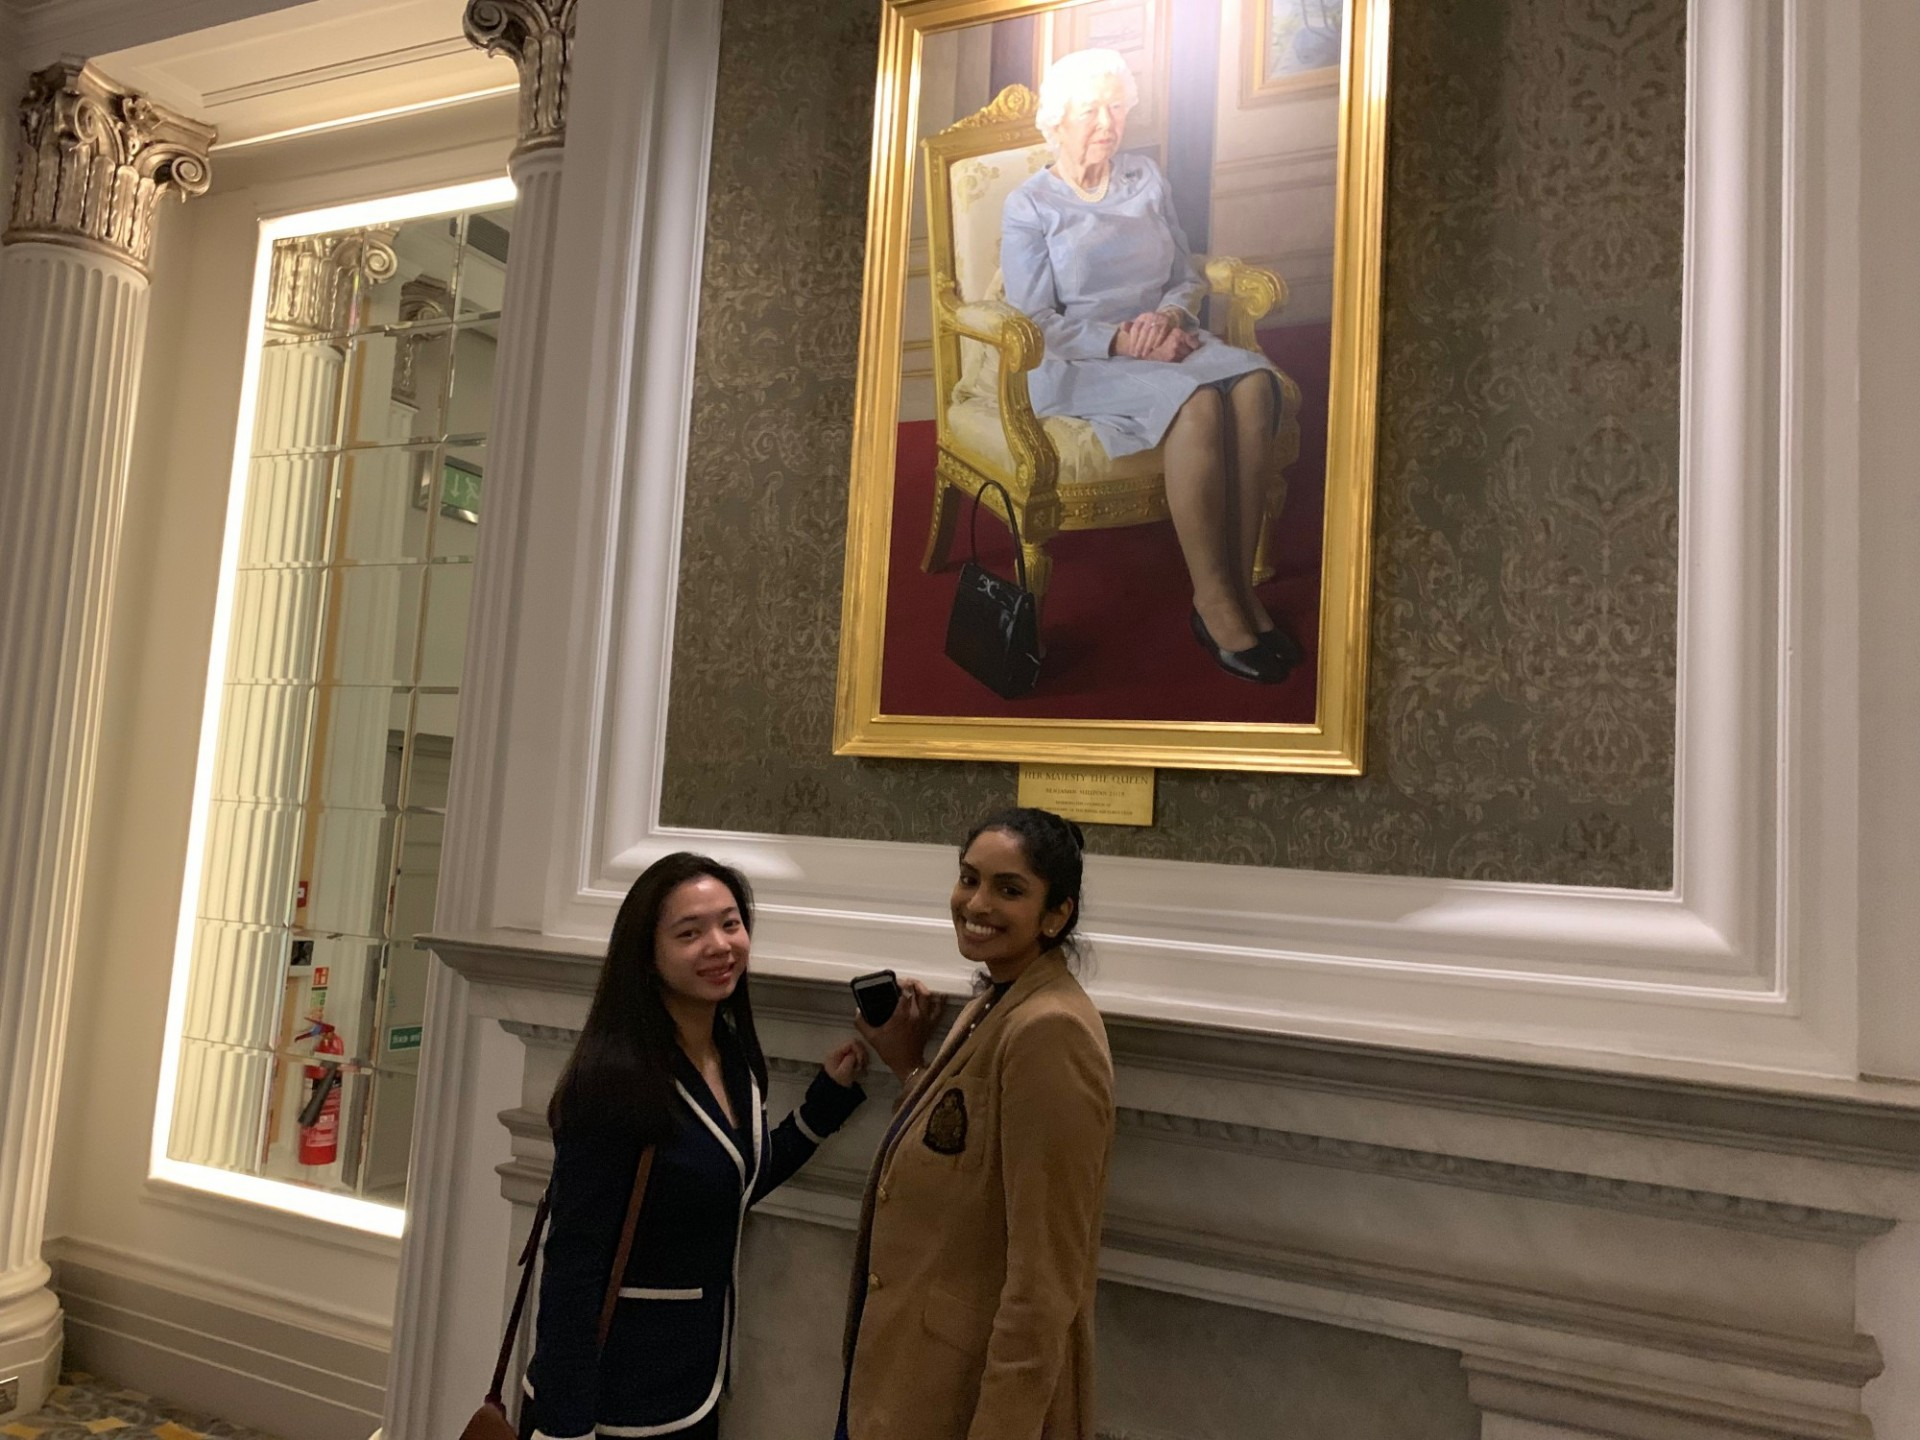 CWAR Fellows Celeste Chan and Sreya Pinnamaneni pose in front of a painting of Queen Elizabeth II at the Royal Air Force Club